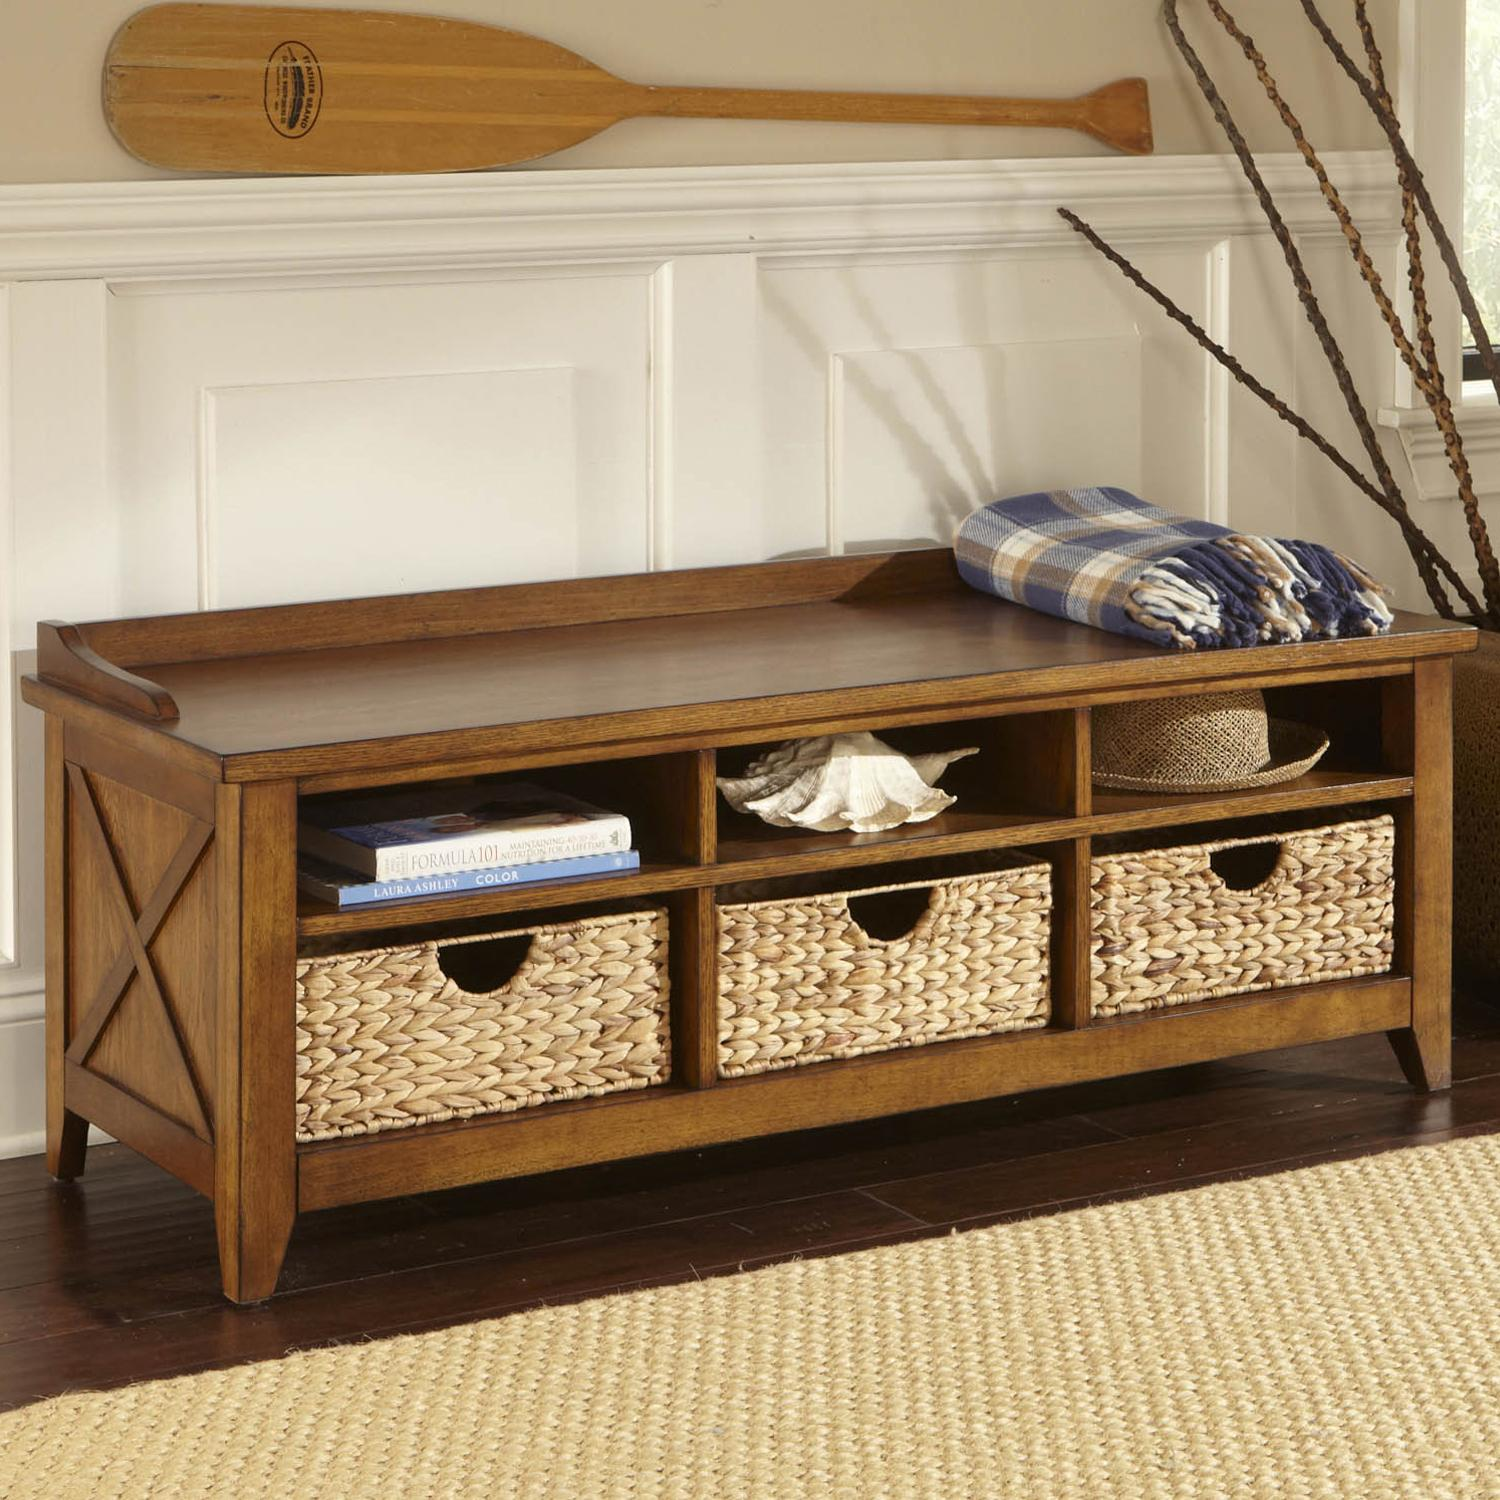 small entryway bench shoe storage. cubby storage entryway bench small shoe e